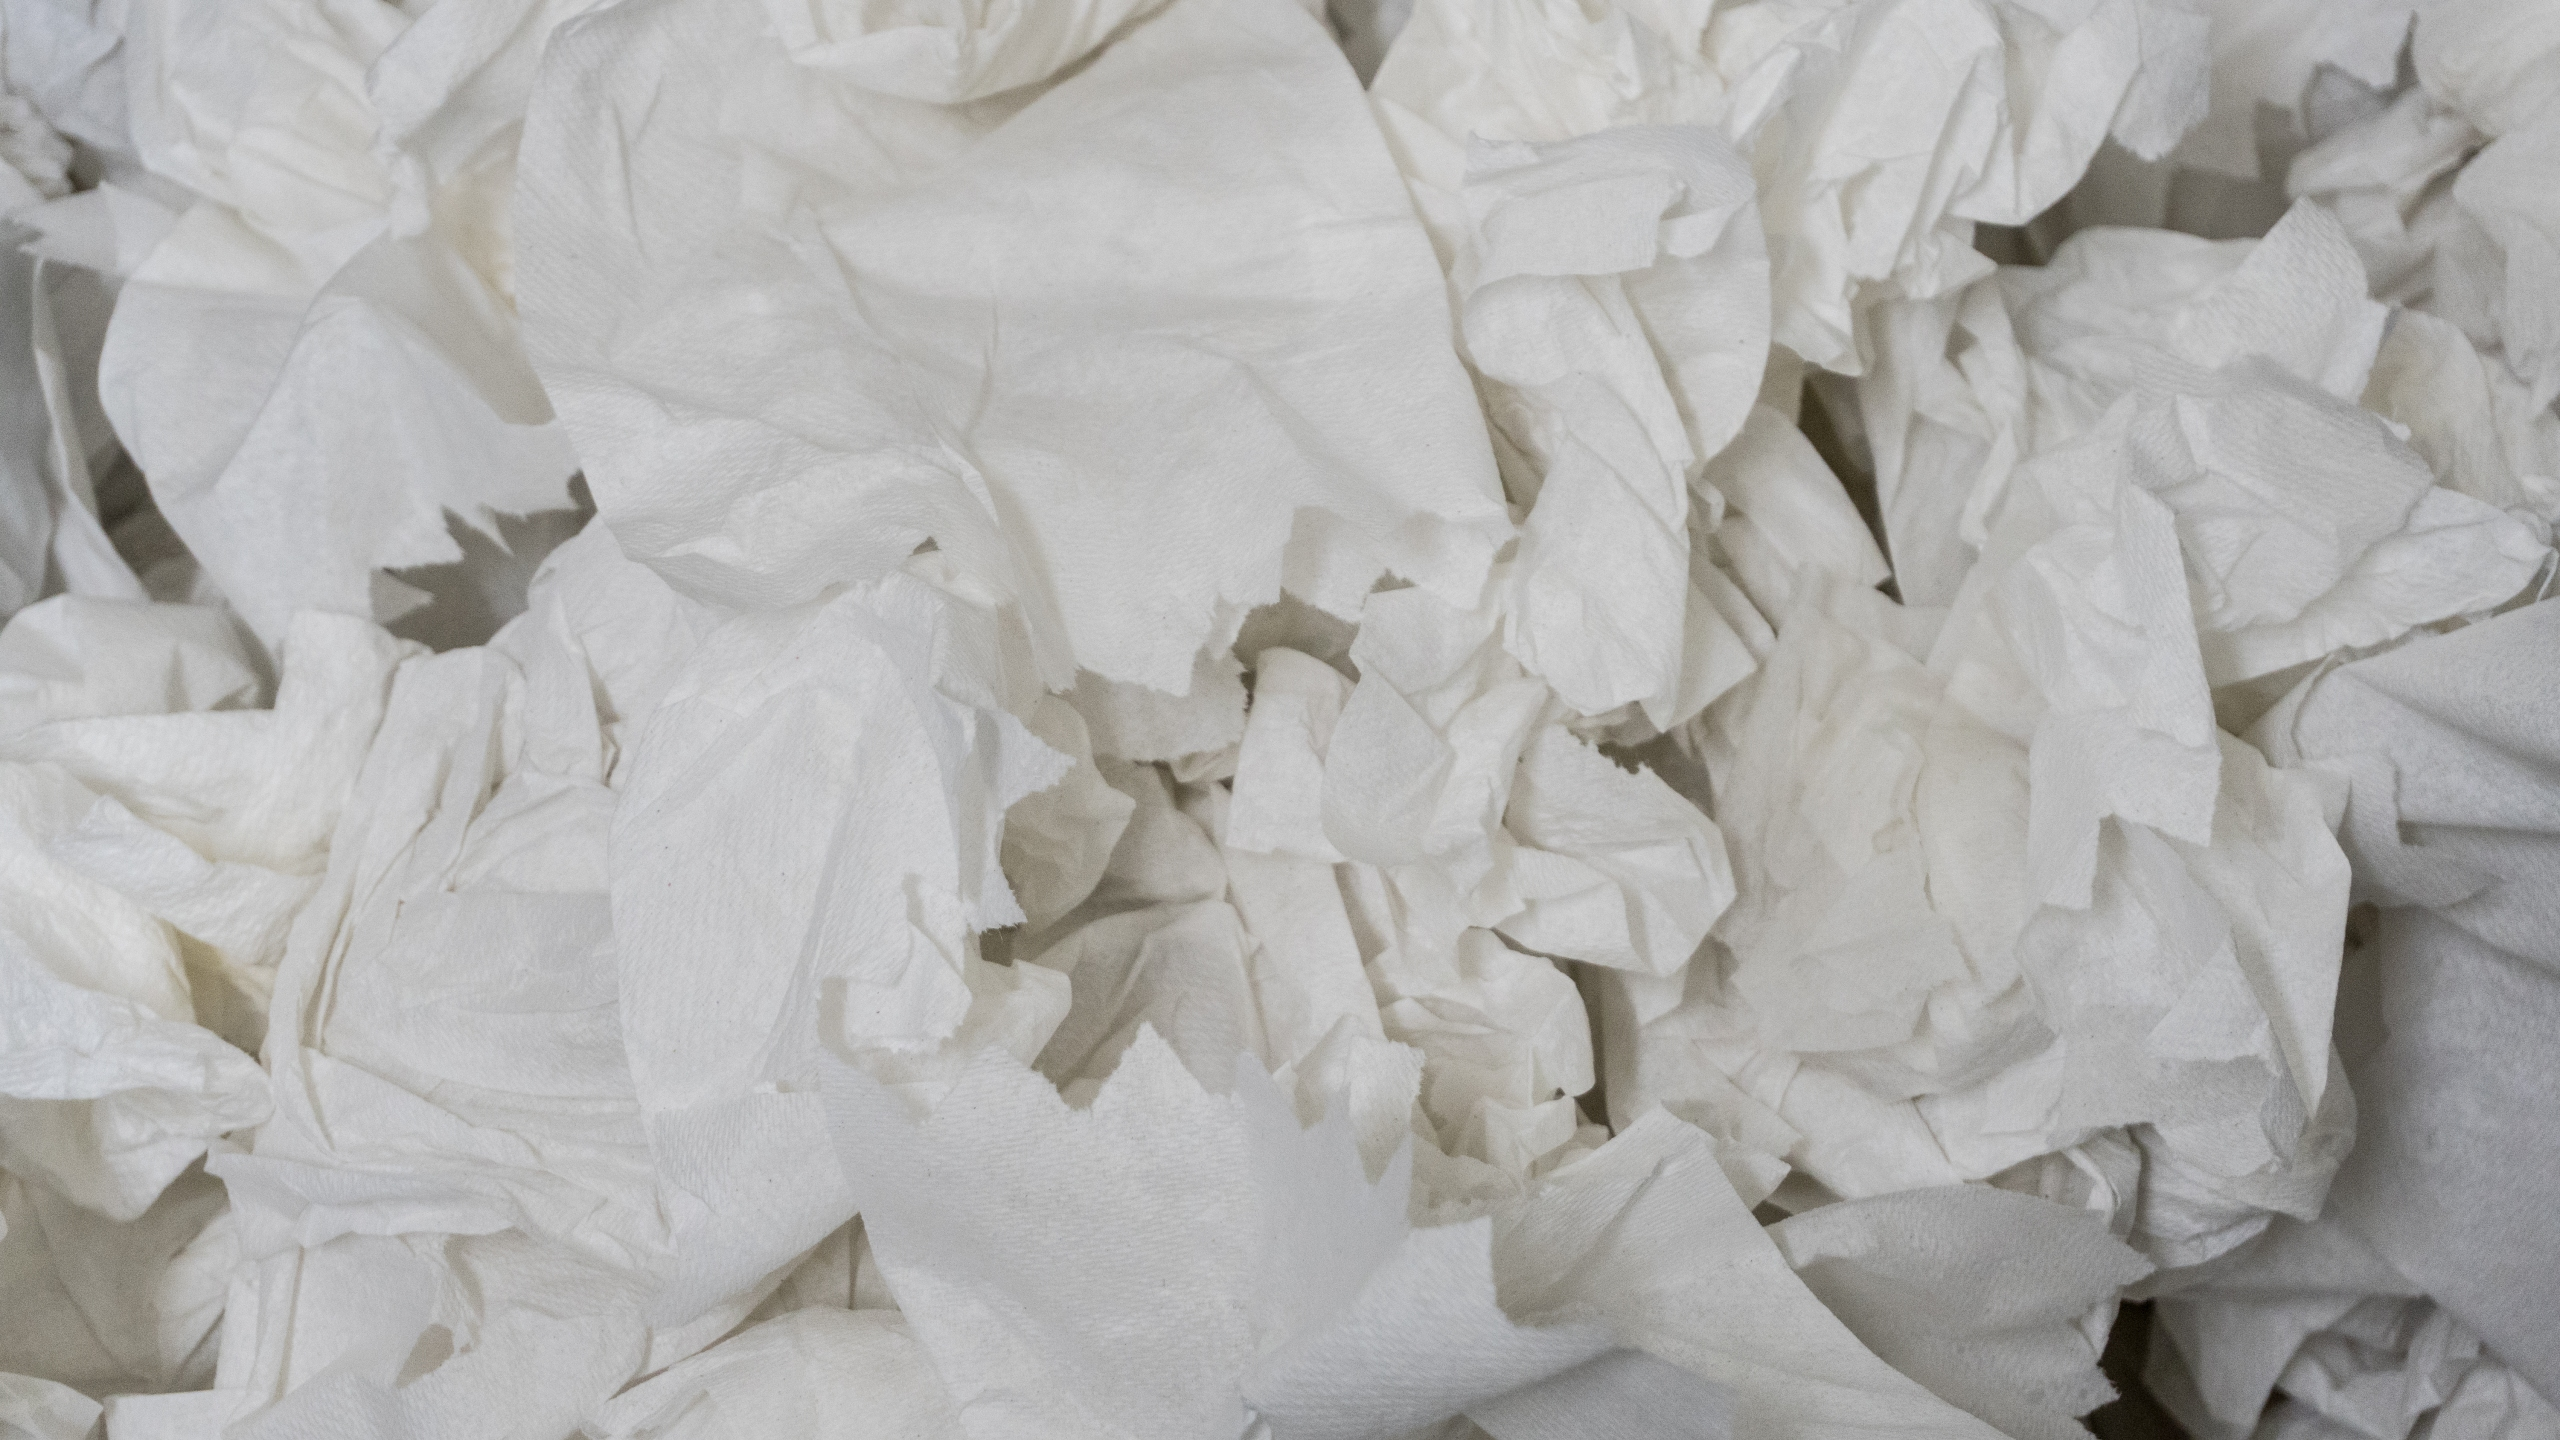 Tossed out napkins are seen in a file image. (Credit: iStock / Getty Images Plus)